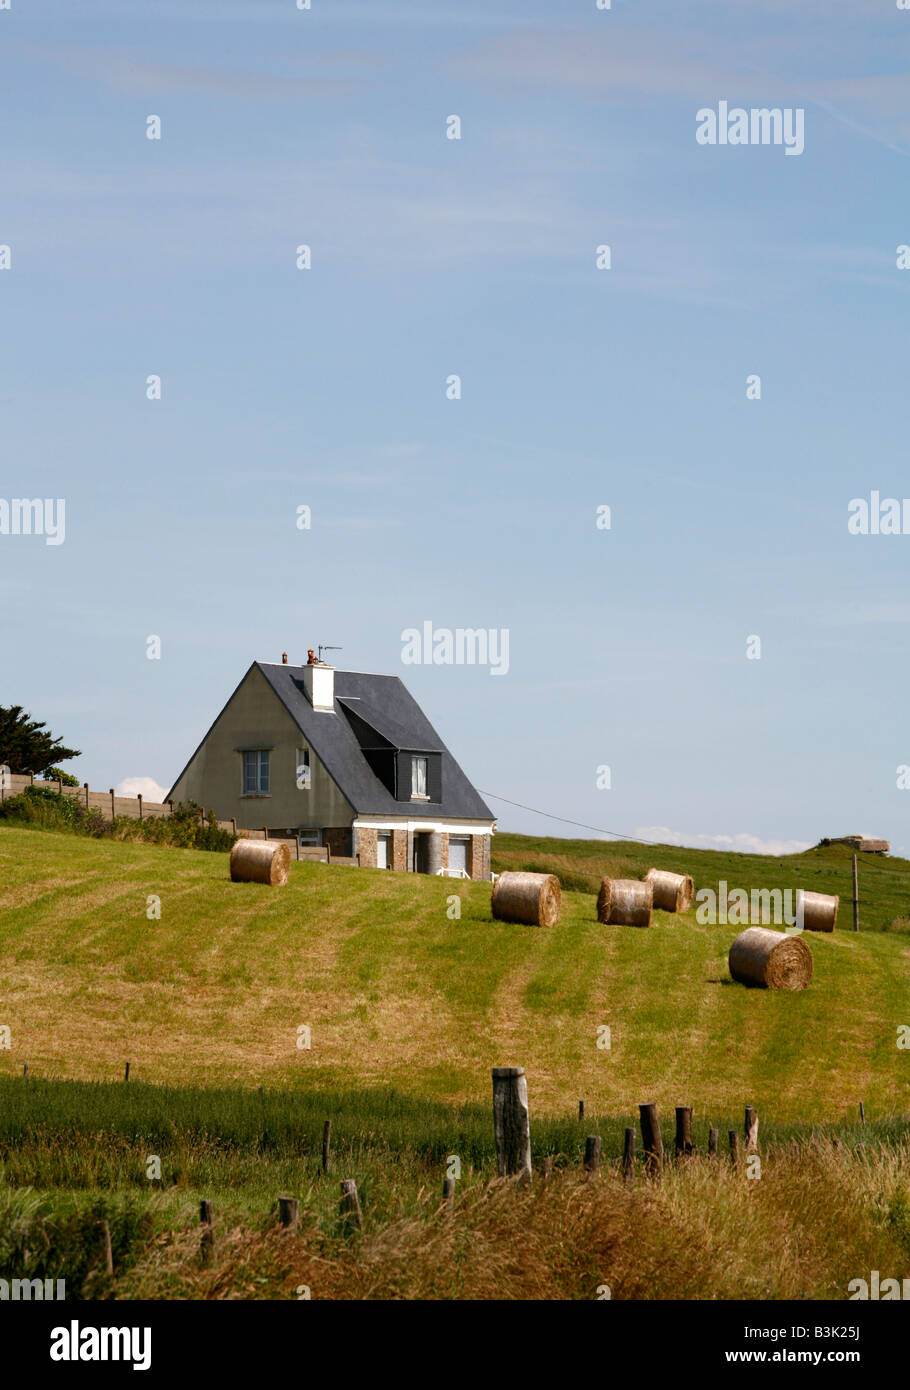 July 2008 - Farm House Normandy France - Stock Image